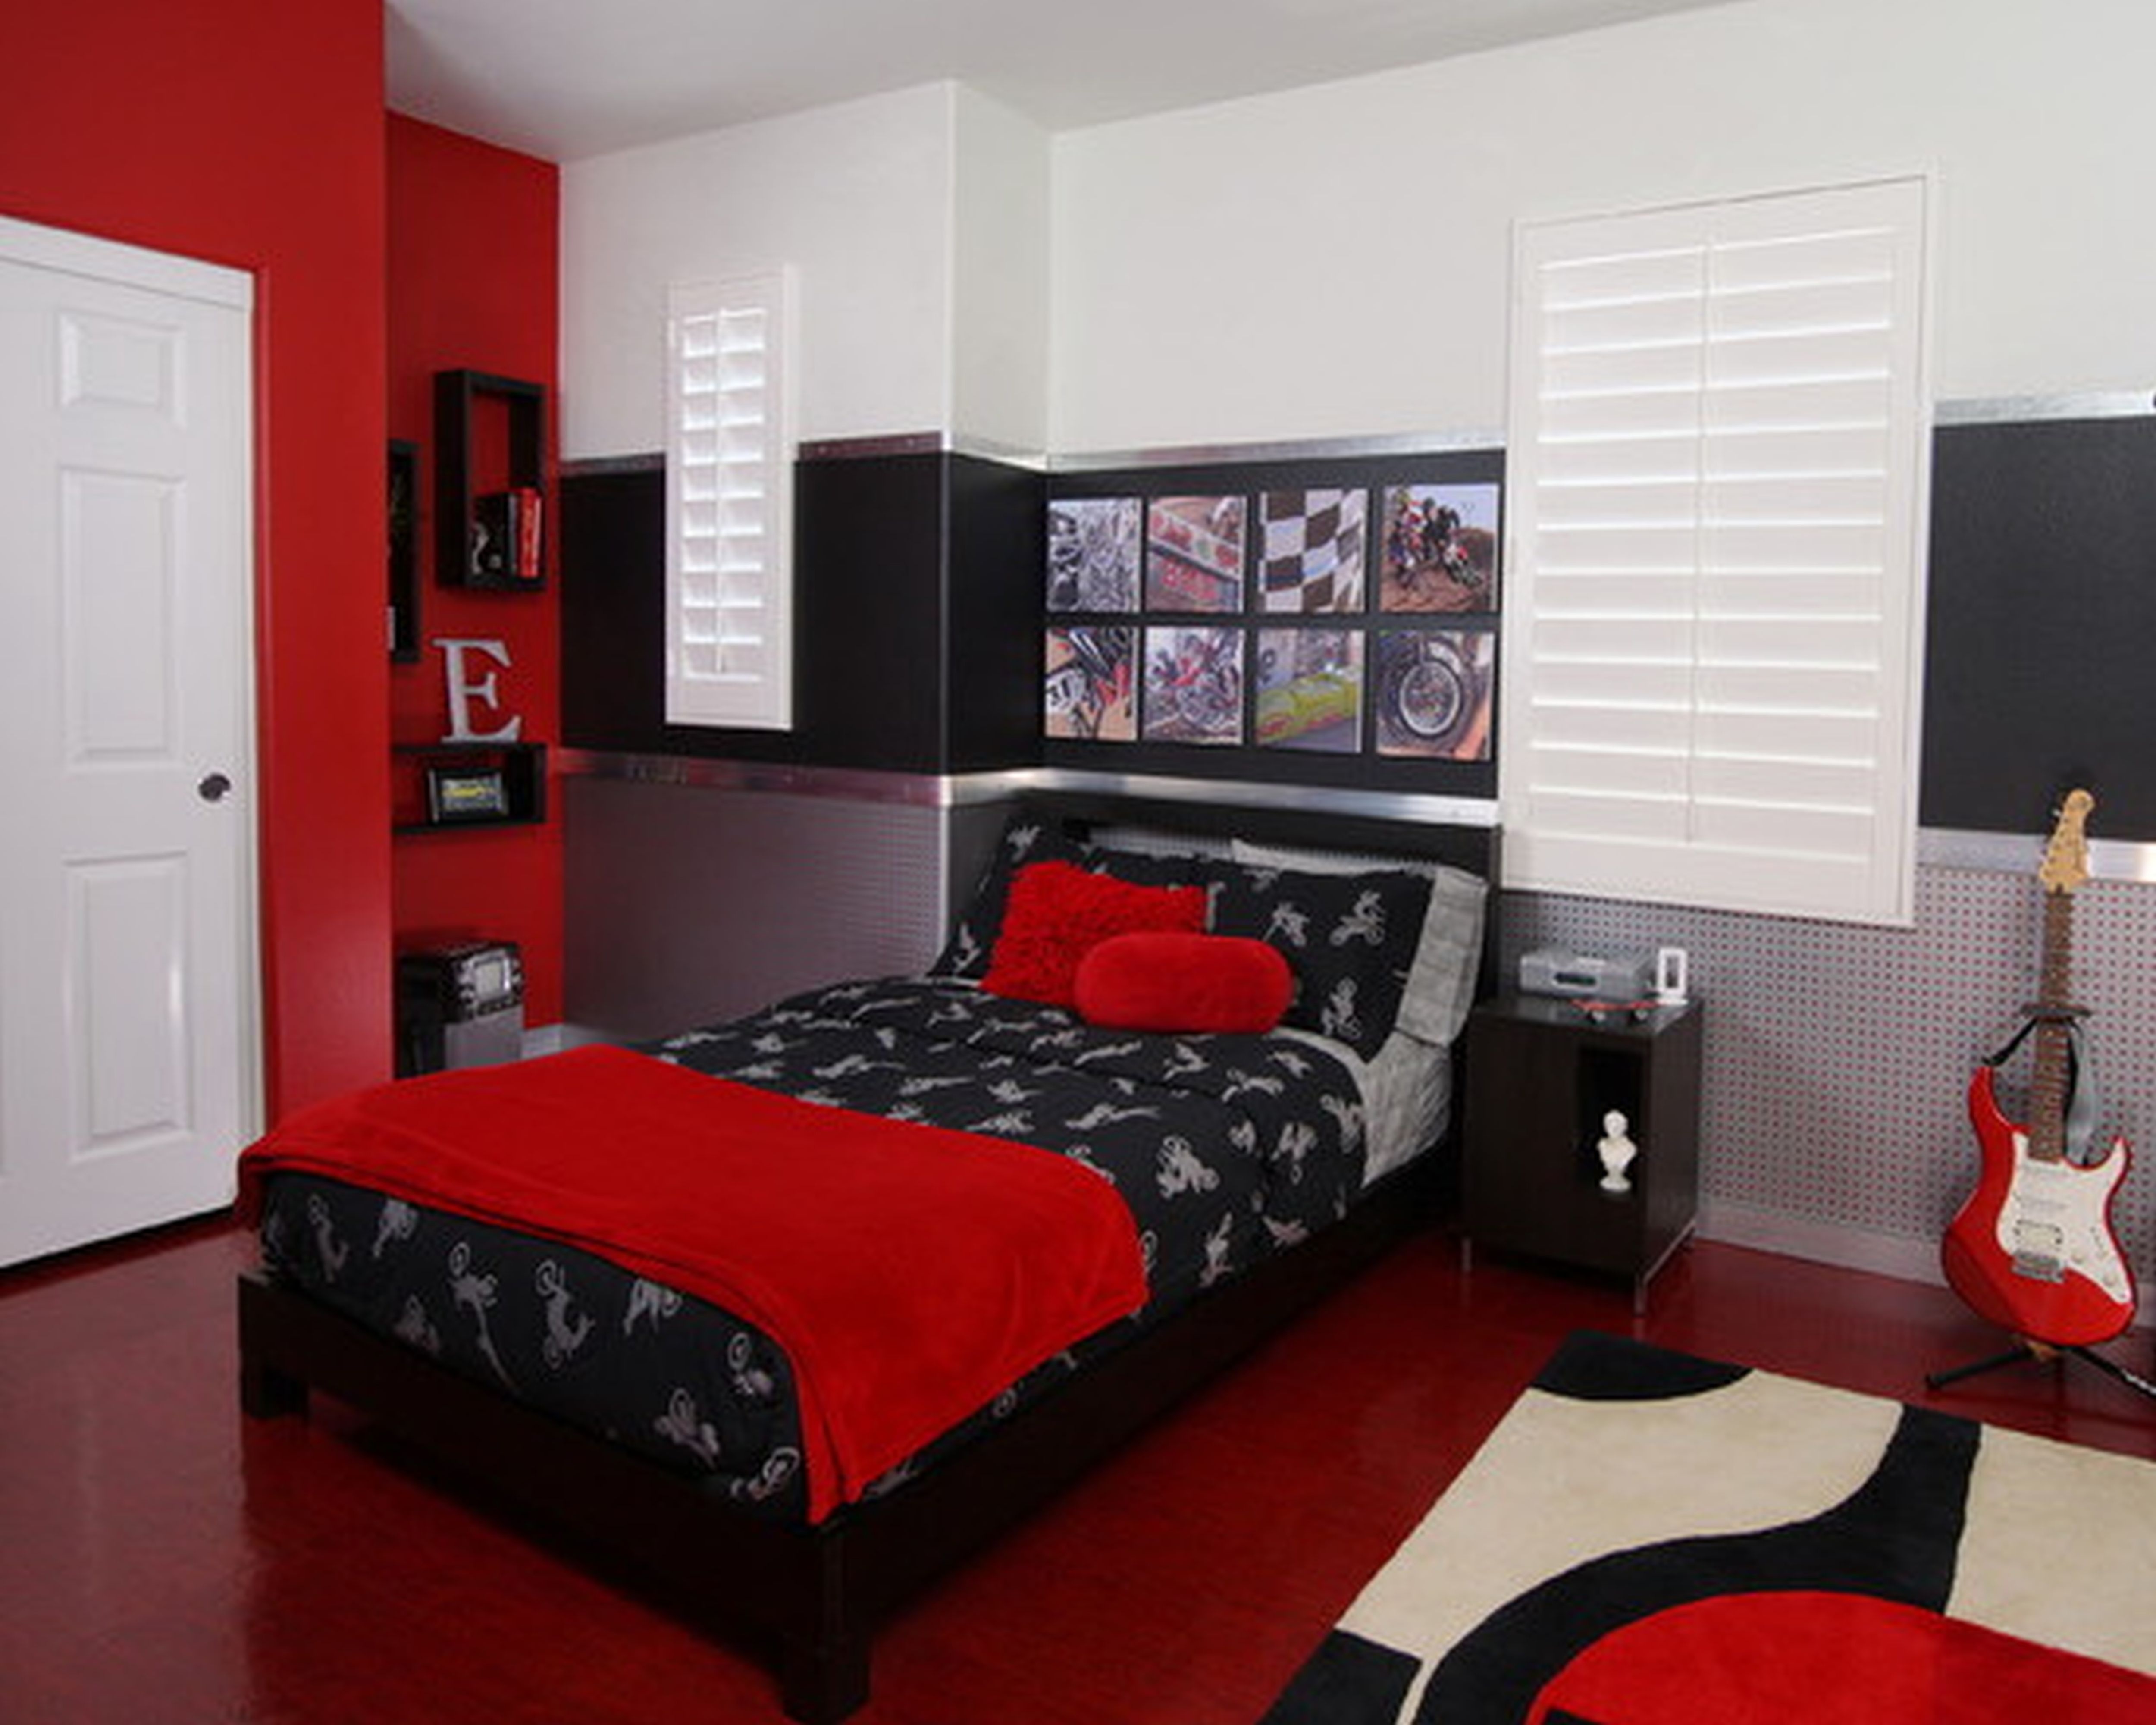 34 Ideas Bedroom Paint Ideas Red Black White Black And Red Living Room Red Walls Bedroom Red